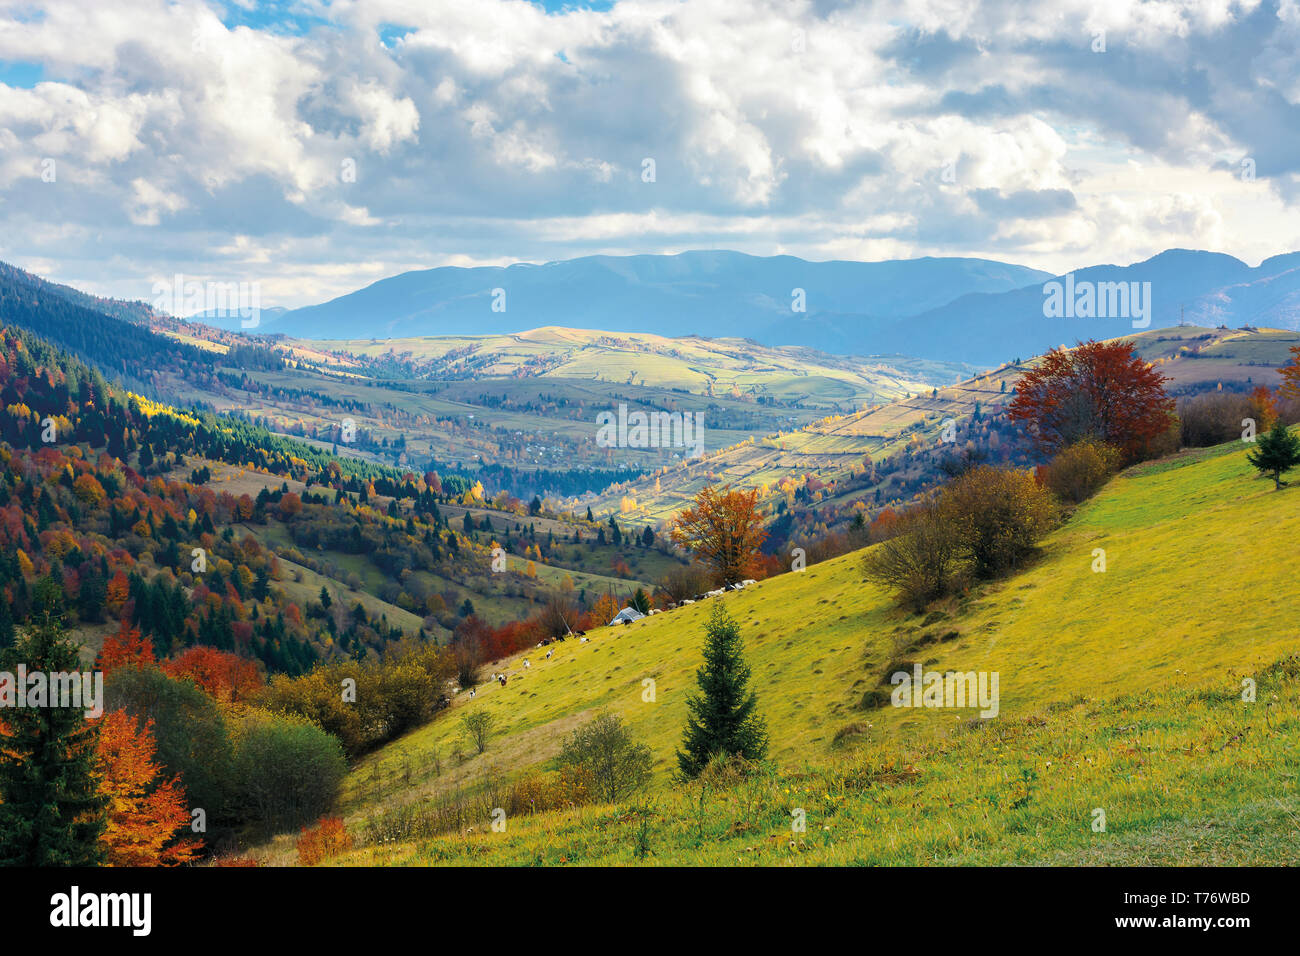 autumn landscape. village on the hillside. forest on the mountain covered with red and yellow leaves. over the mountains the beam of light falls on a  - Stock Image